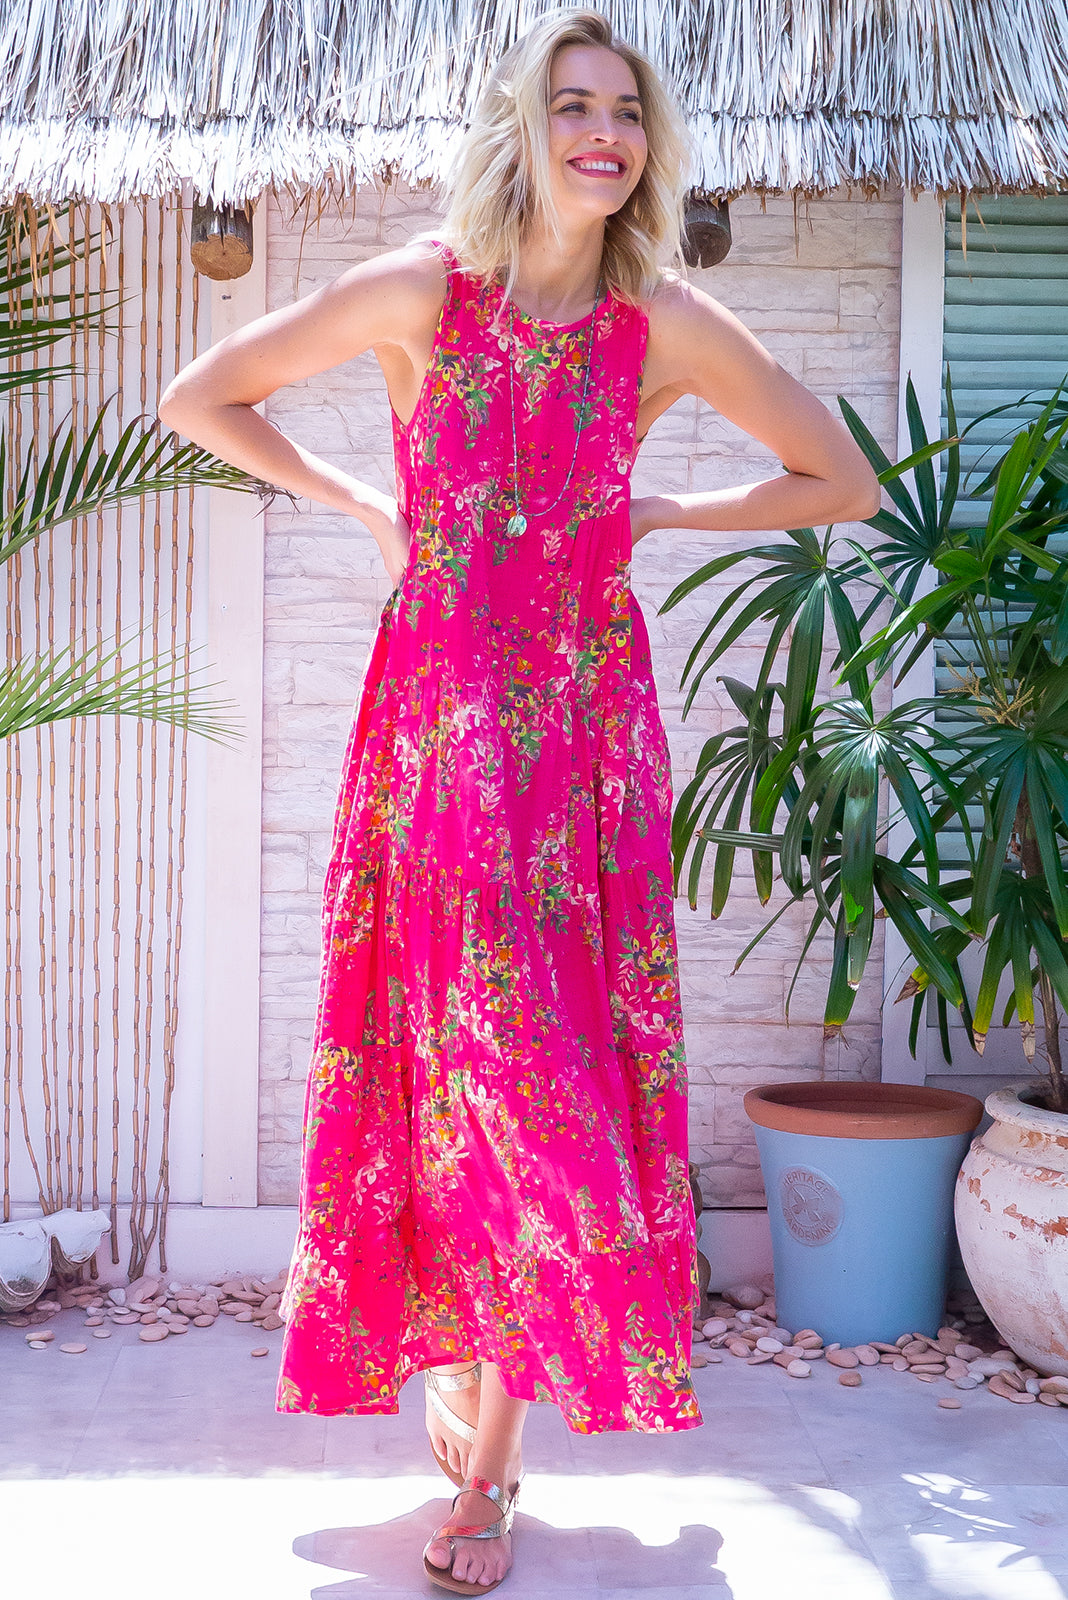 The Cloudland Pink Party Maxi Dres features back neck tie, sleeveless, breezy, tiered skirt, side pockets and 50%rayon, 50% cotton fabric in watermelon pink with floral watercolour print.